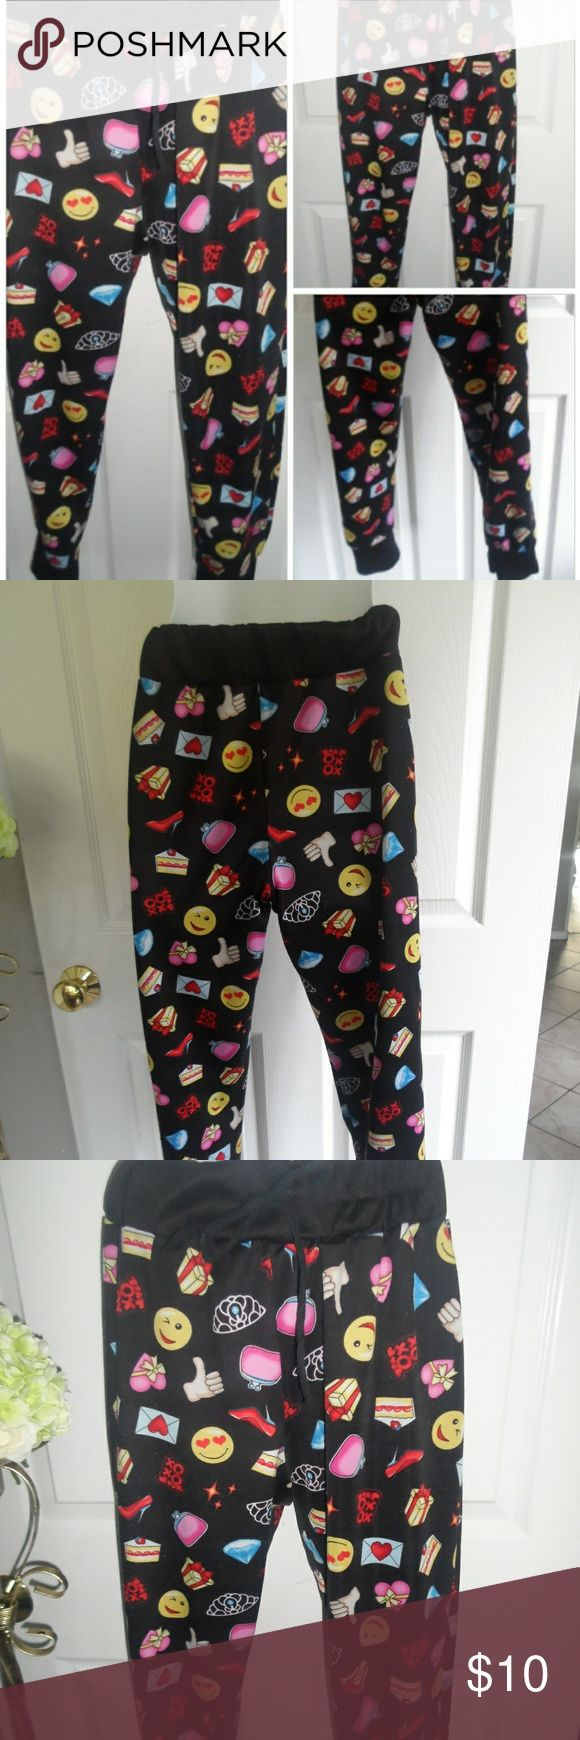 Cute Emoji Lounge Pants Cute Emoji Lounge Pants.  Elastic waist.  Strings do not adjust they are just for decoration. Other